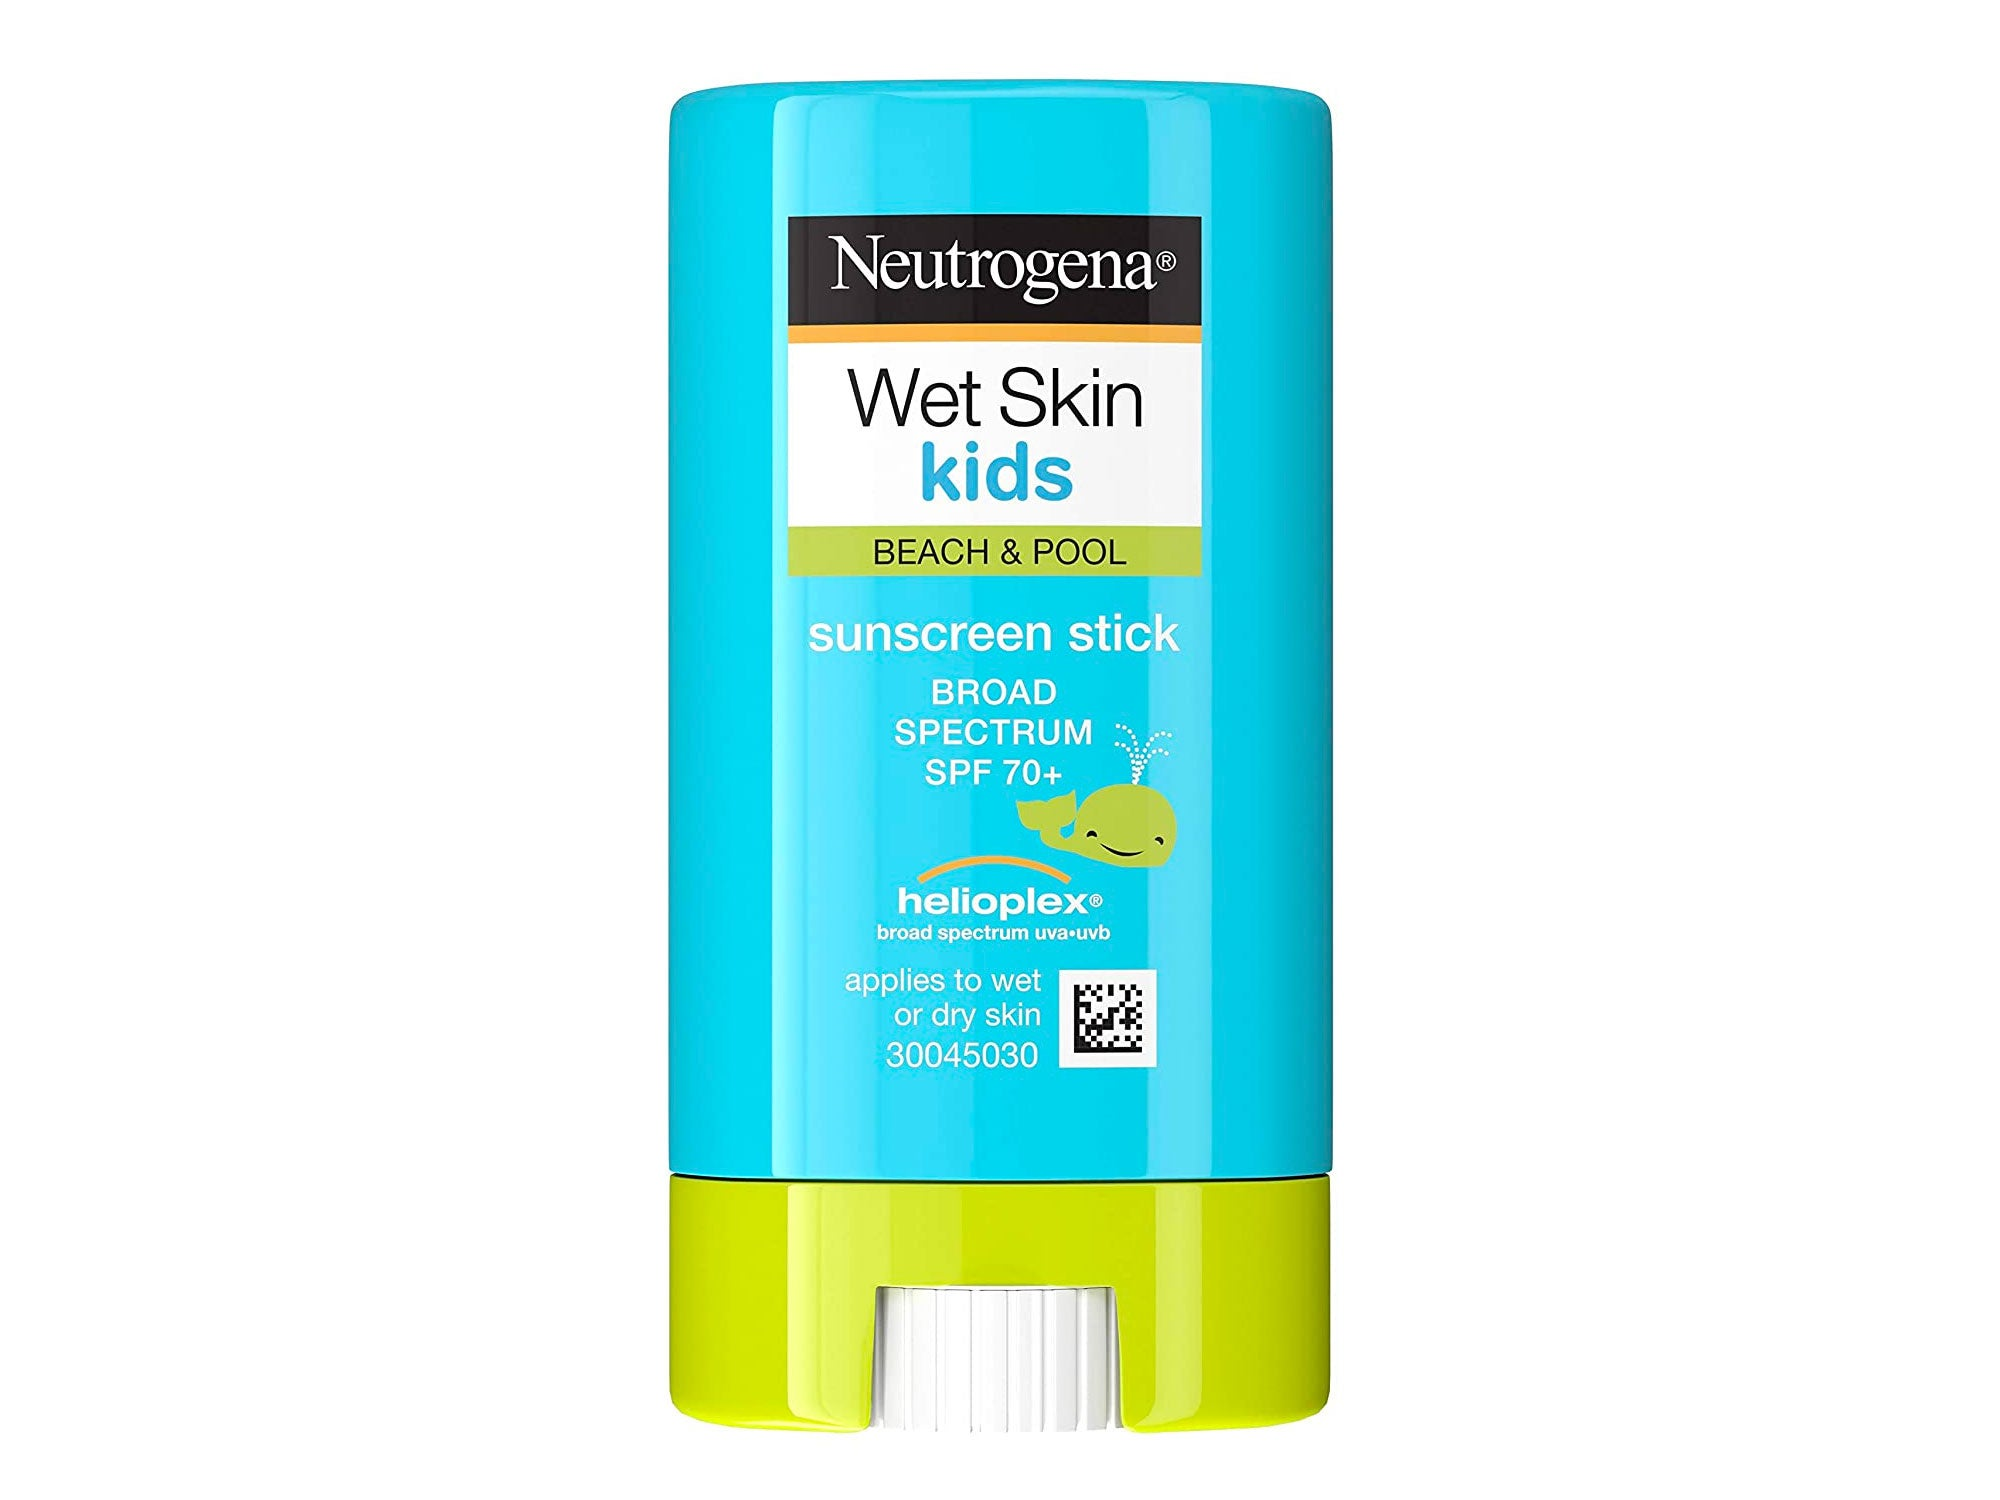 Neutrogena Wet Skin Kids Water Resistant Sunscreen Stick, Kids Sunscreen for Face and Body, Broad Spectrum SPF 70 UVA/UVB Sun Protection, Oil-Free & Hypoallergenic